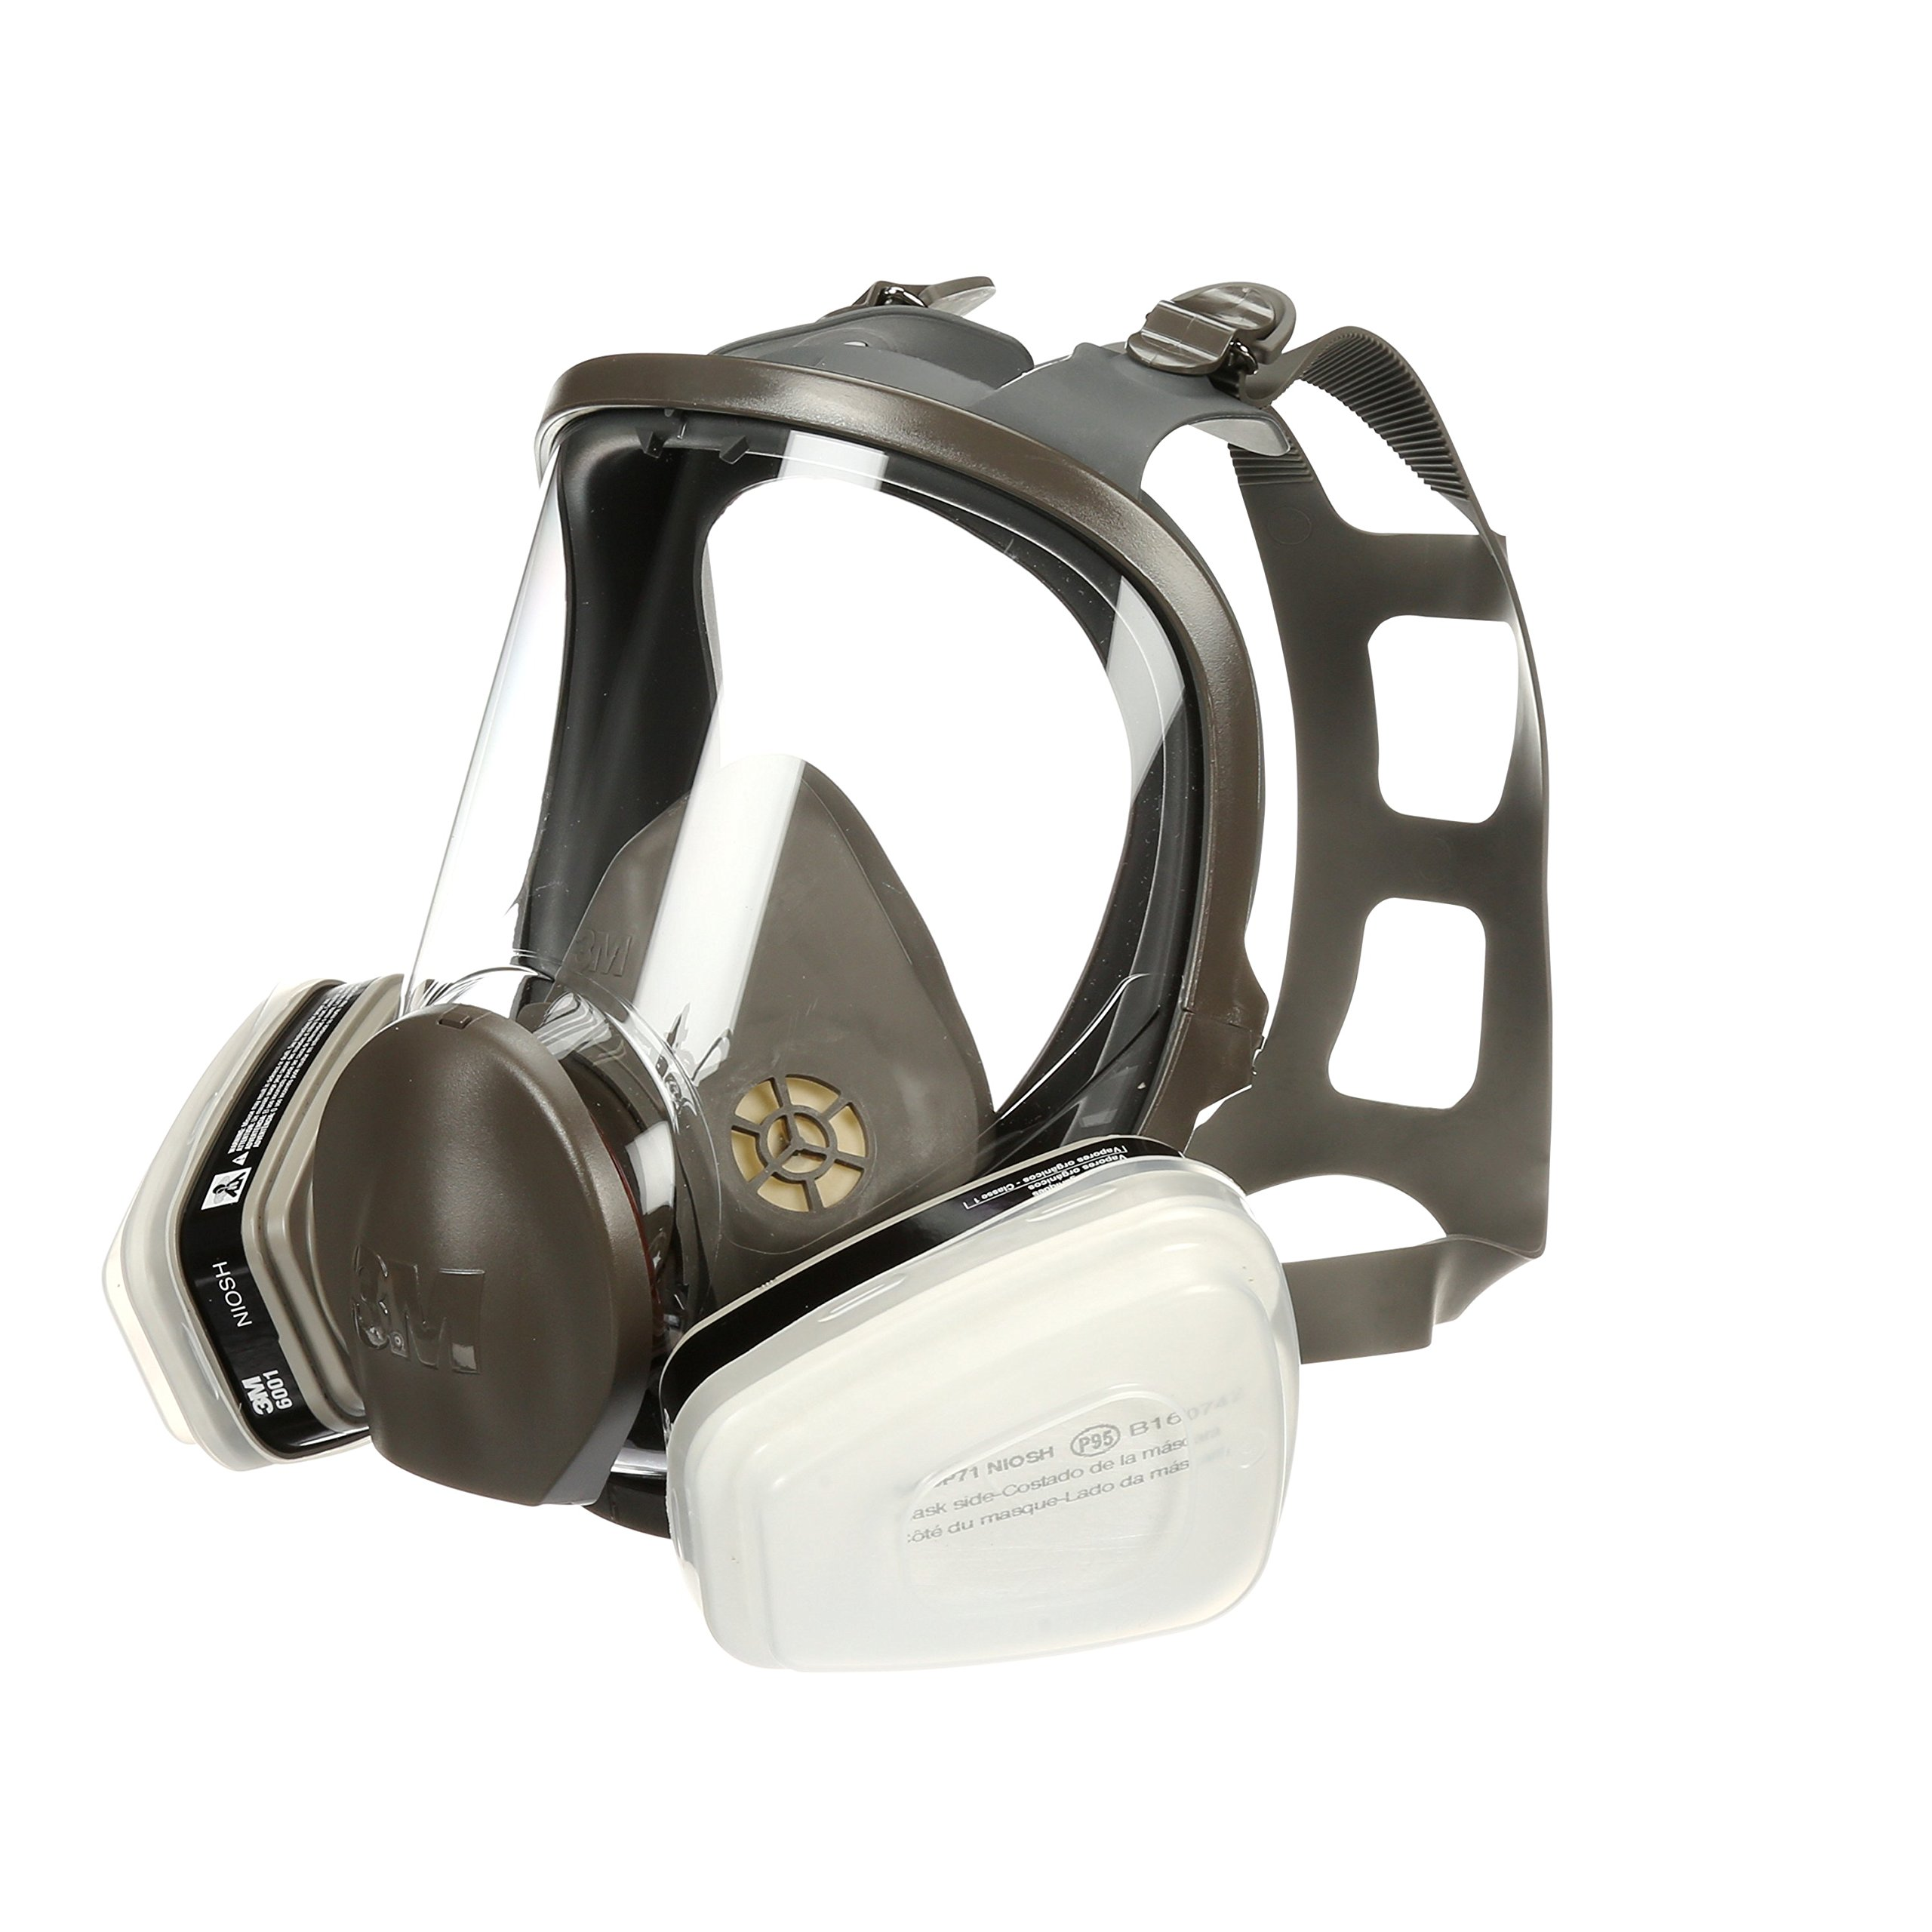 3M Full Face Paint Project Respirator, Large by 3M (Image #6)